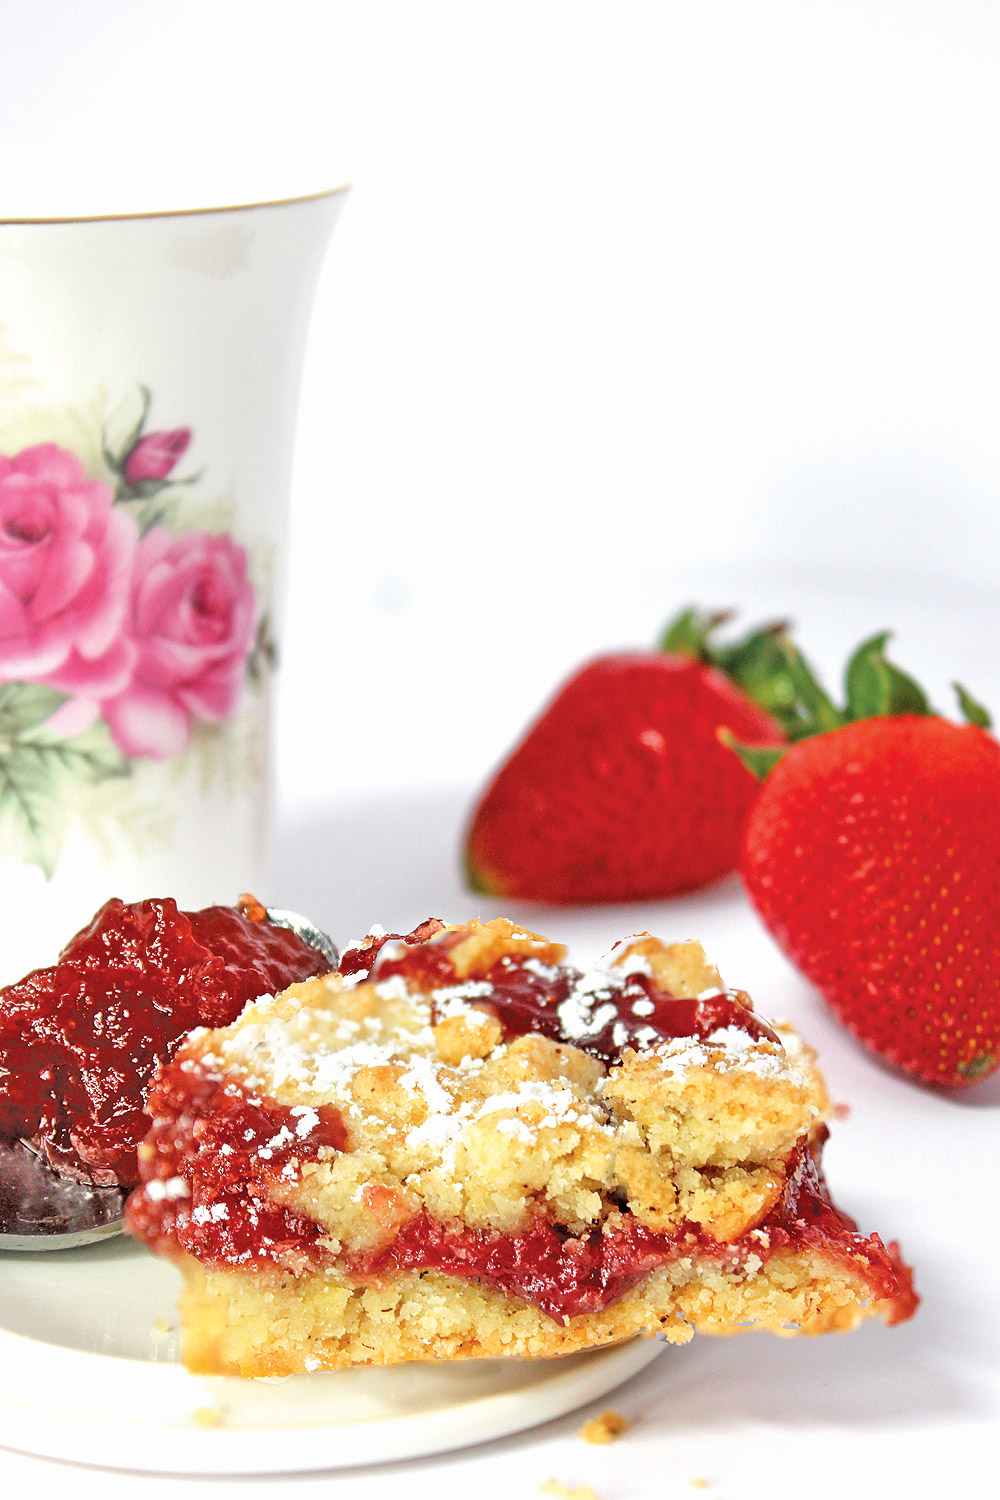 Strawberry Jam Bar plated with spoon of strawberry moonshine jam on side with teacup and fresh strawberries in background.